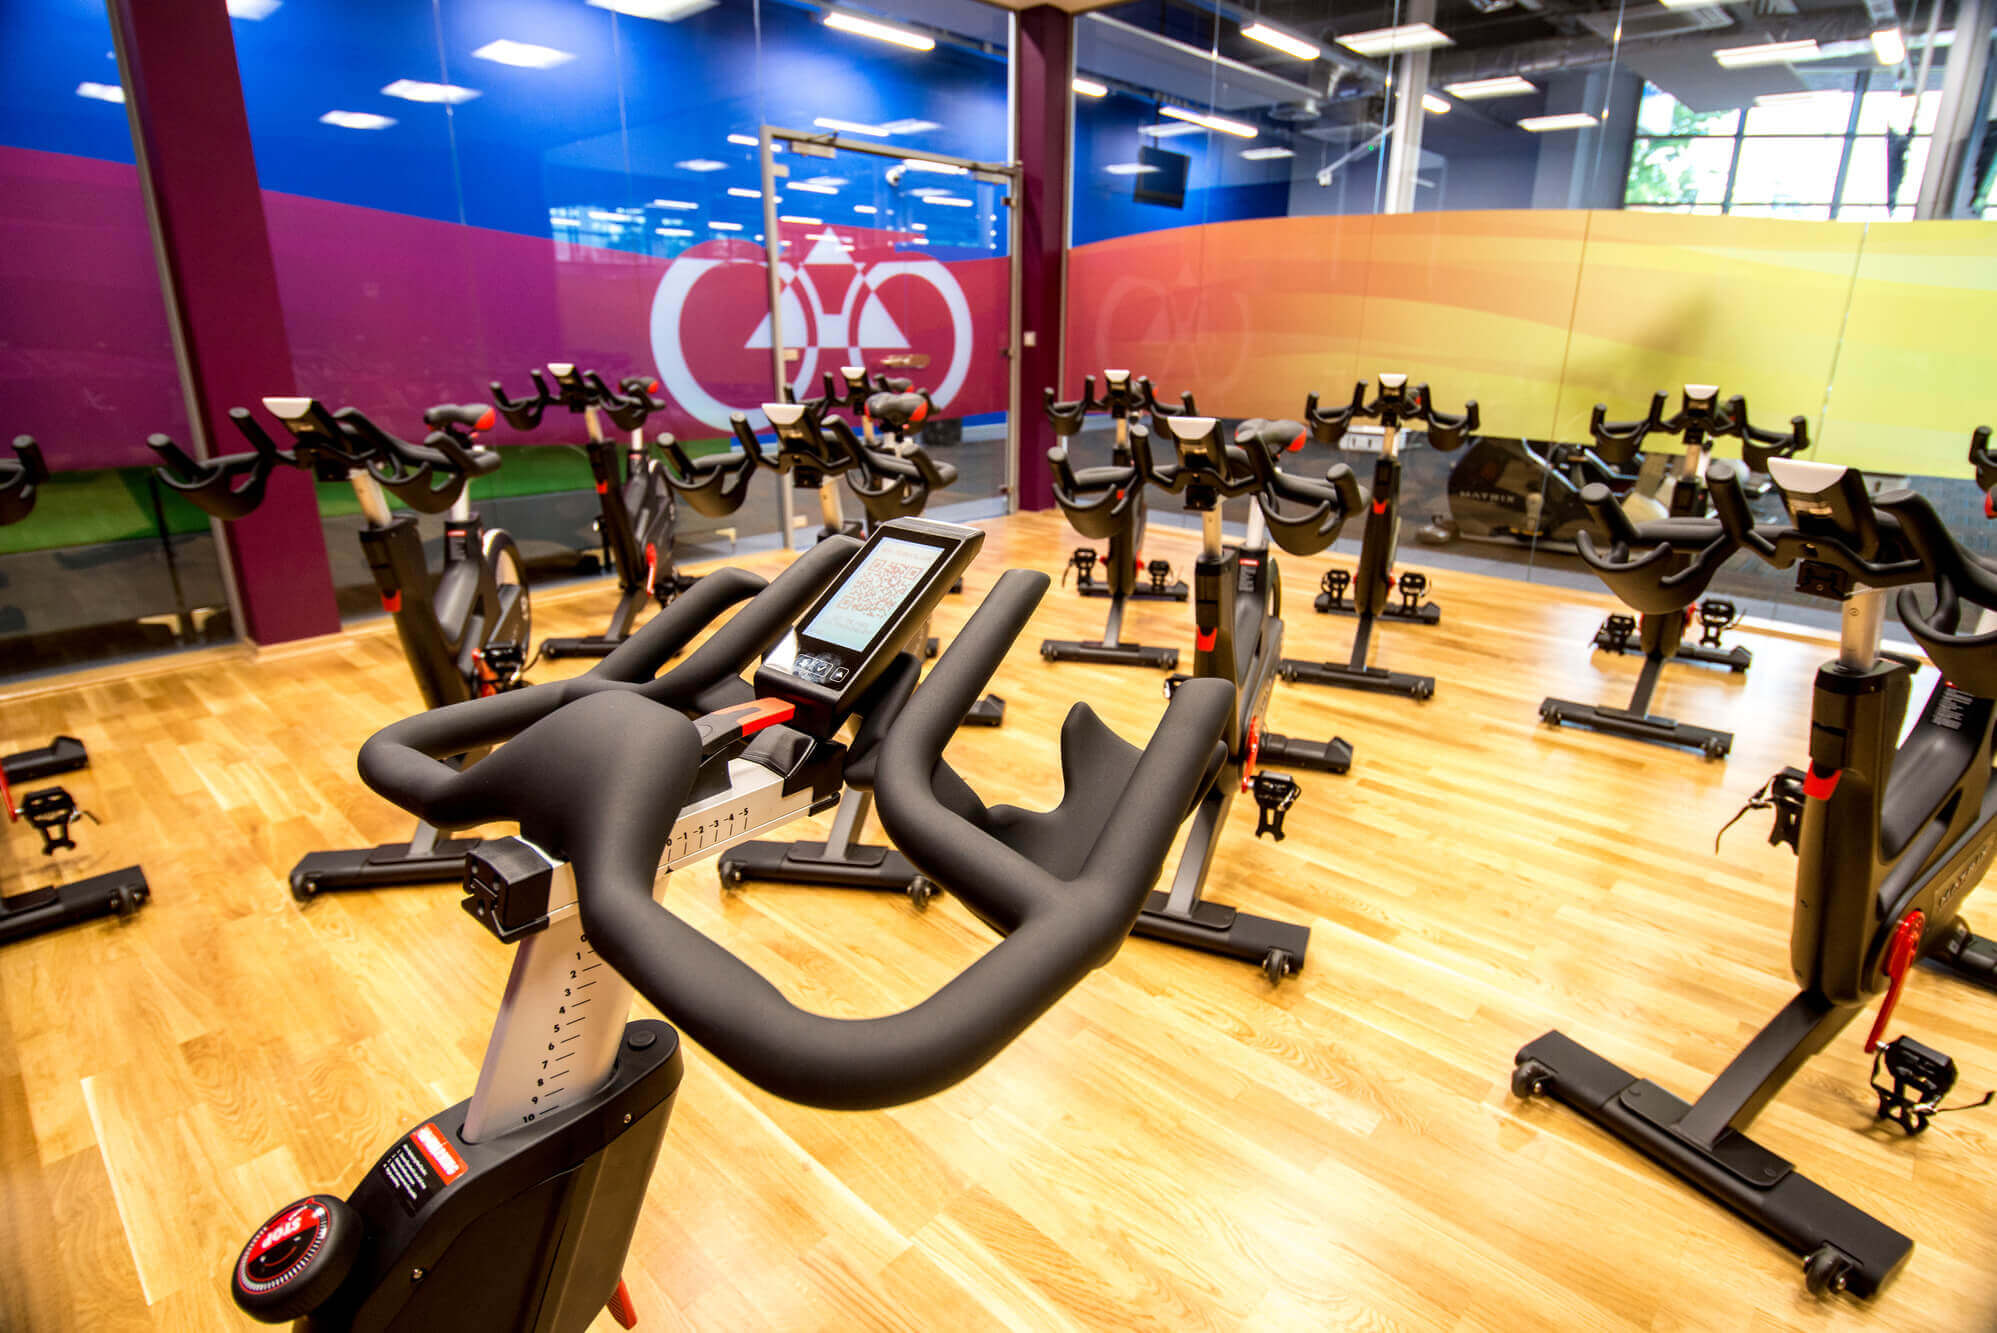 Sports Centre - Spinning Studio